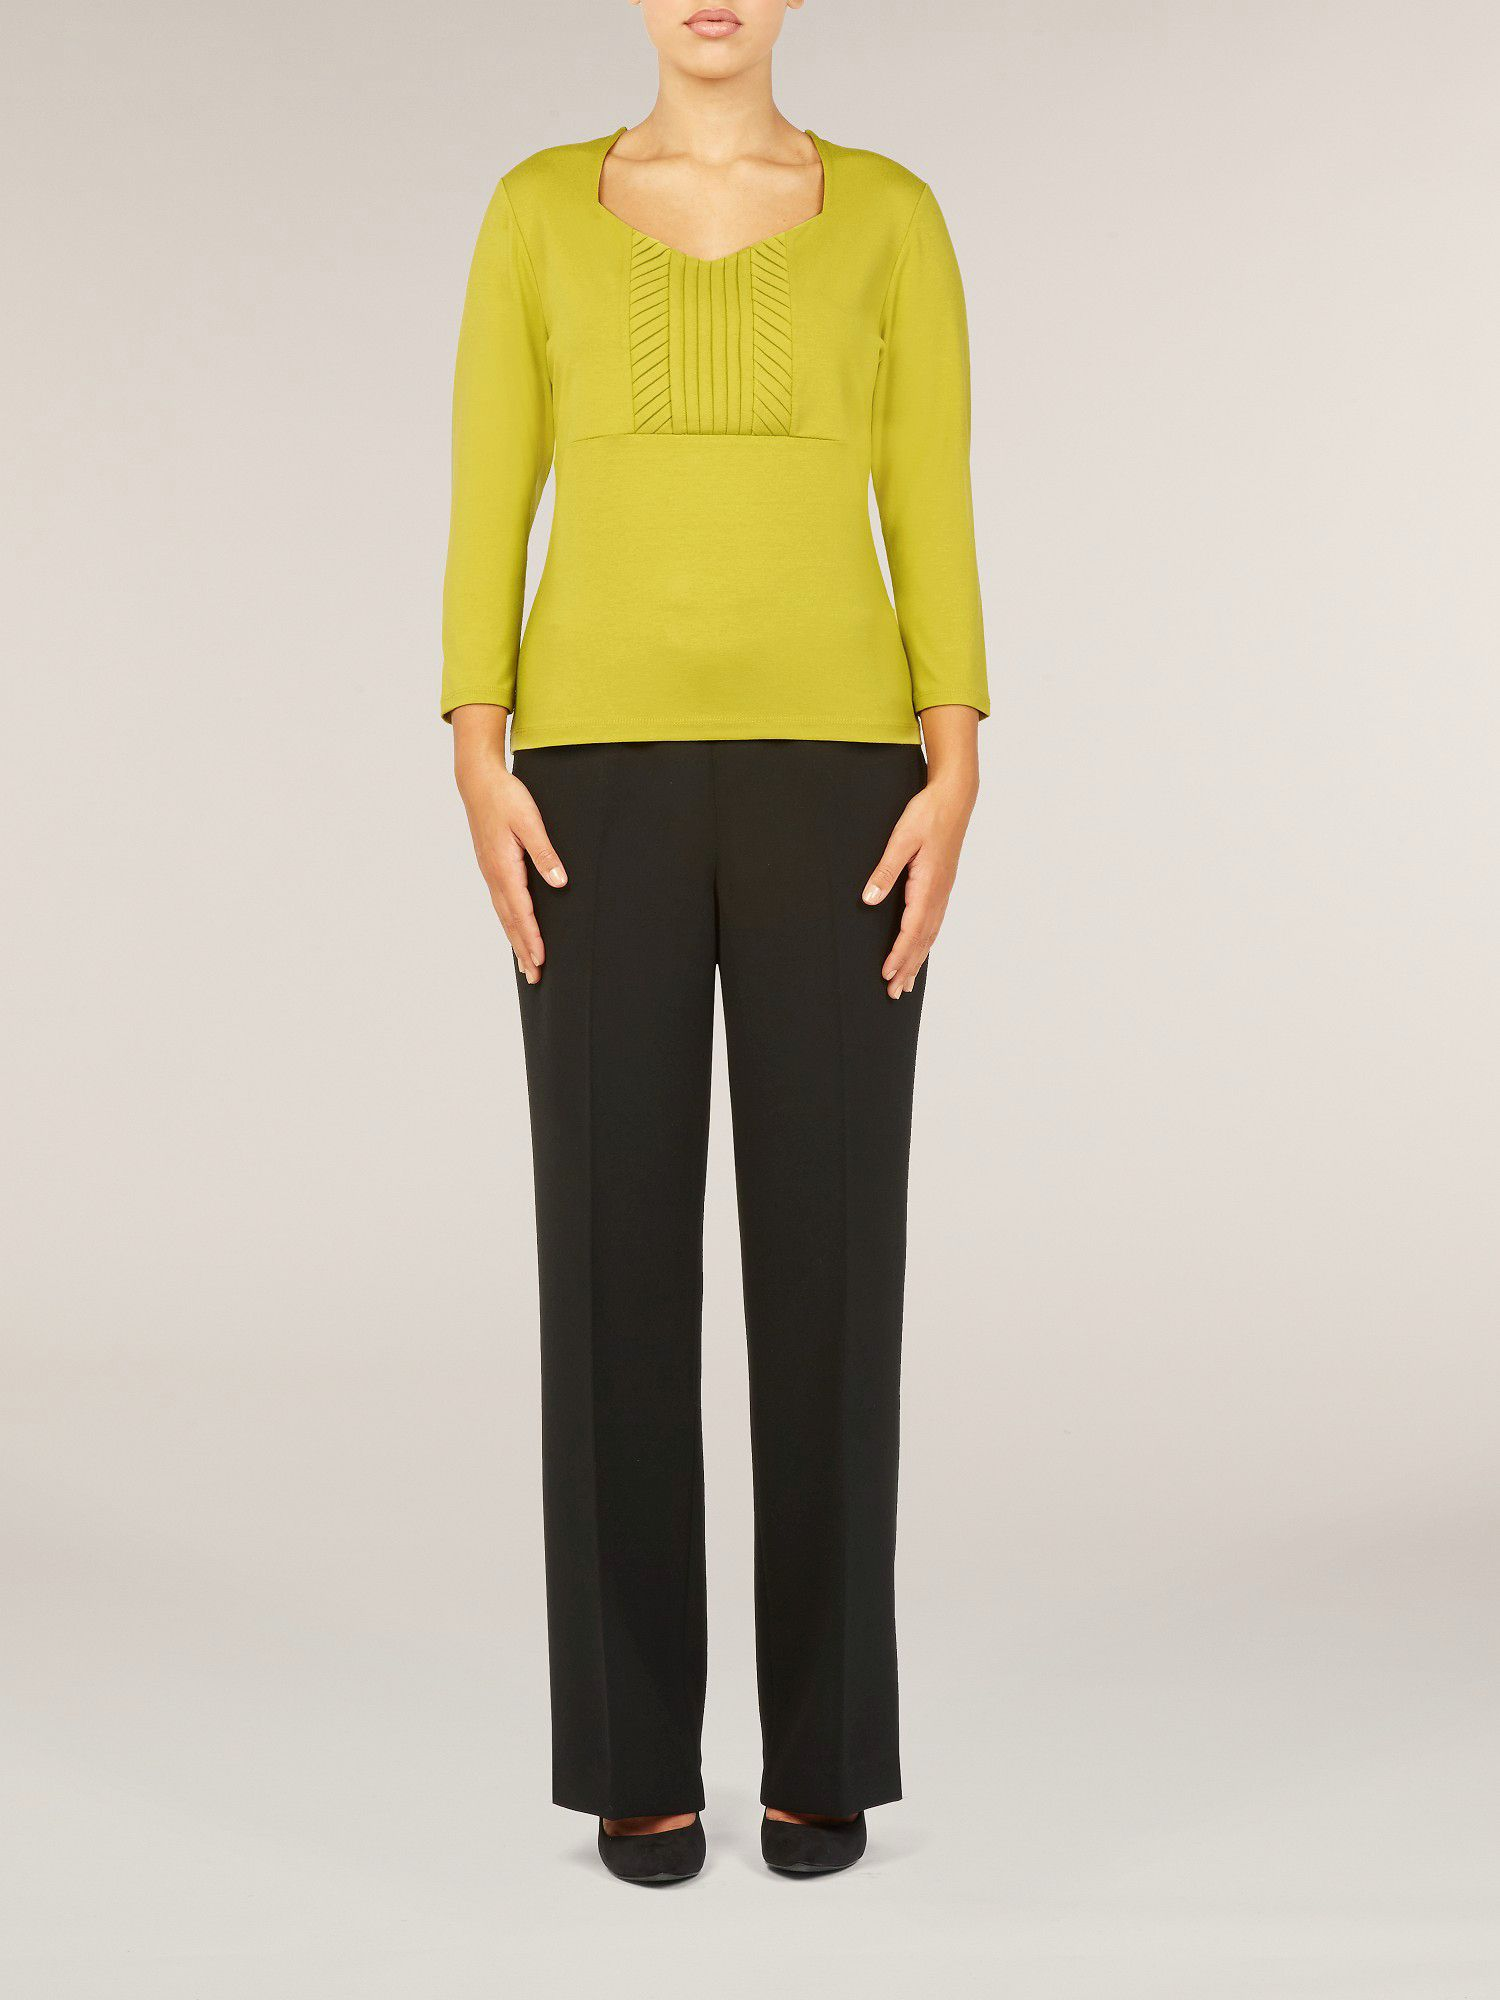 Fennel pleat front jersey top